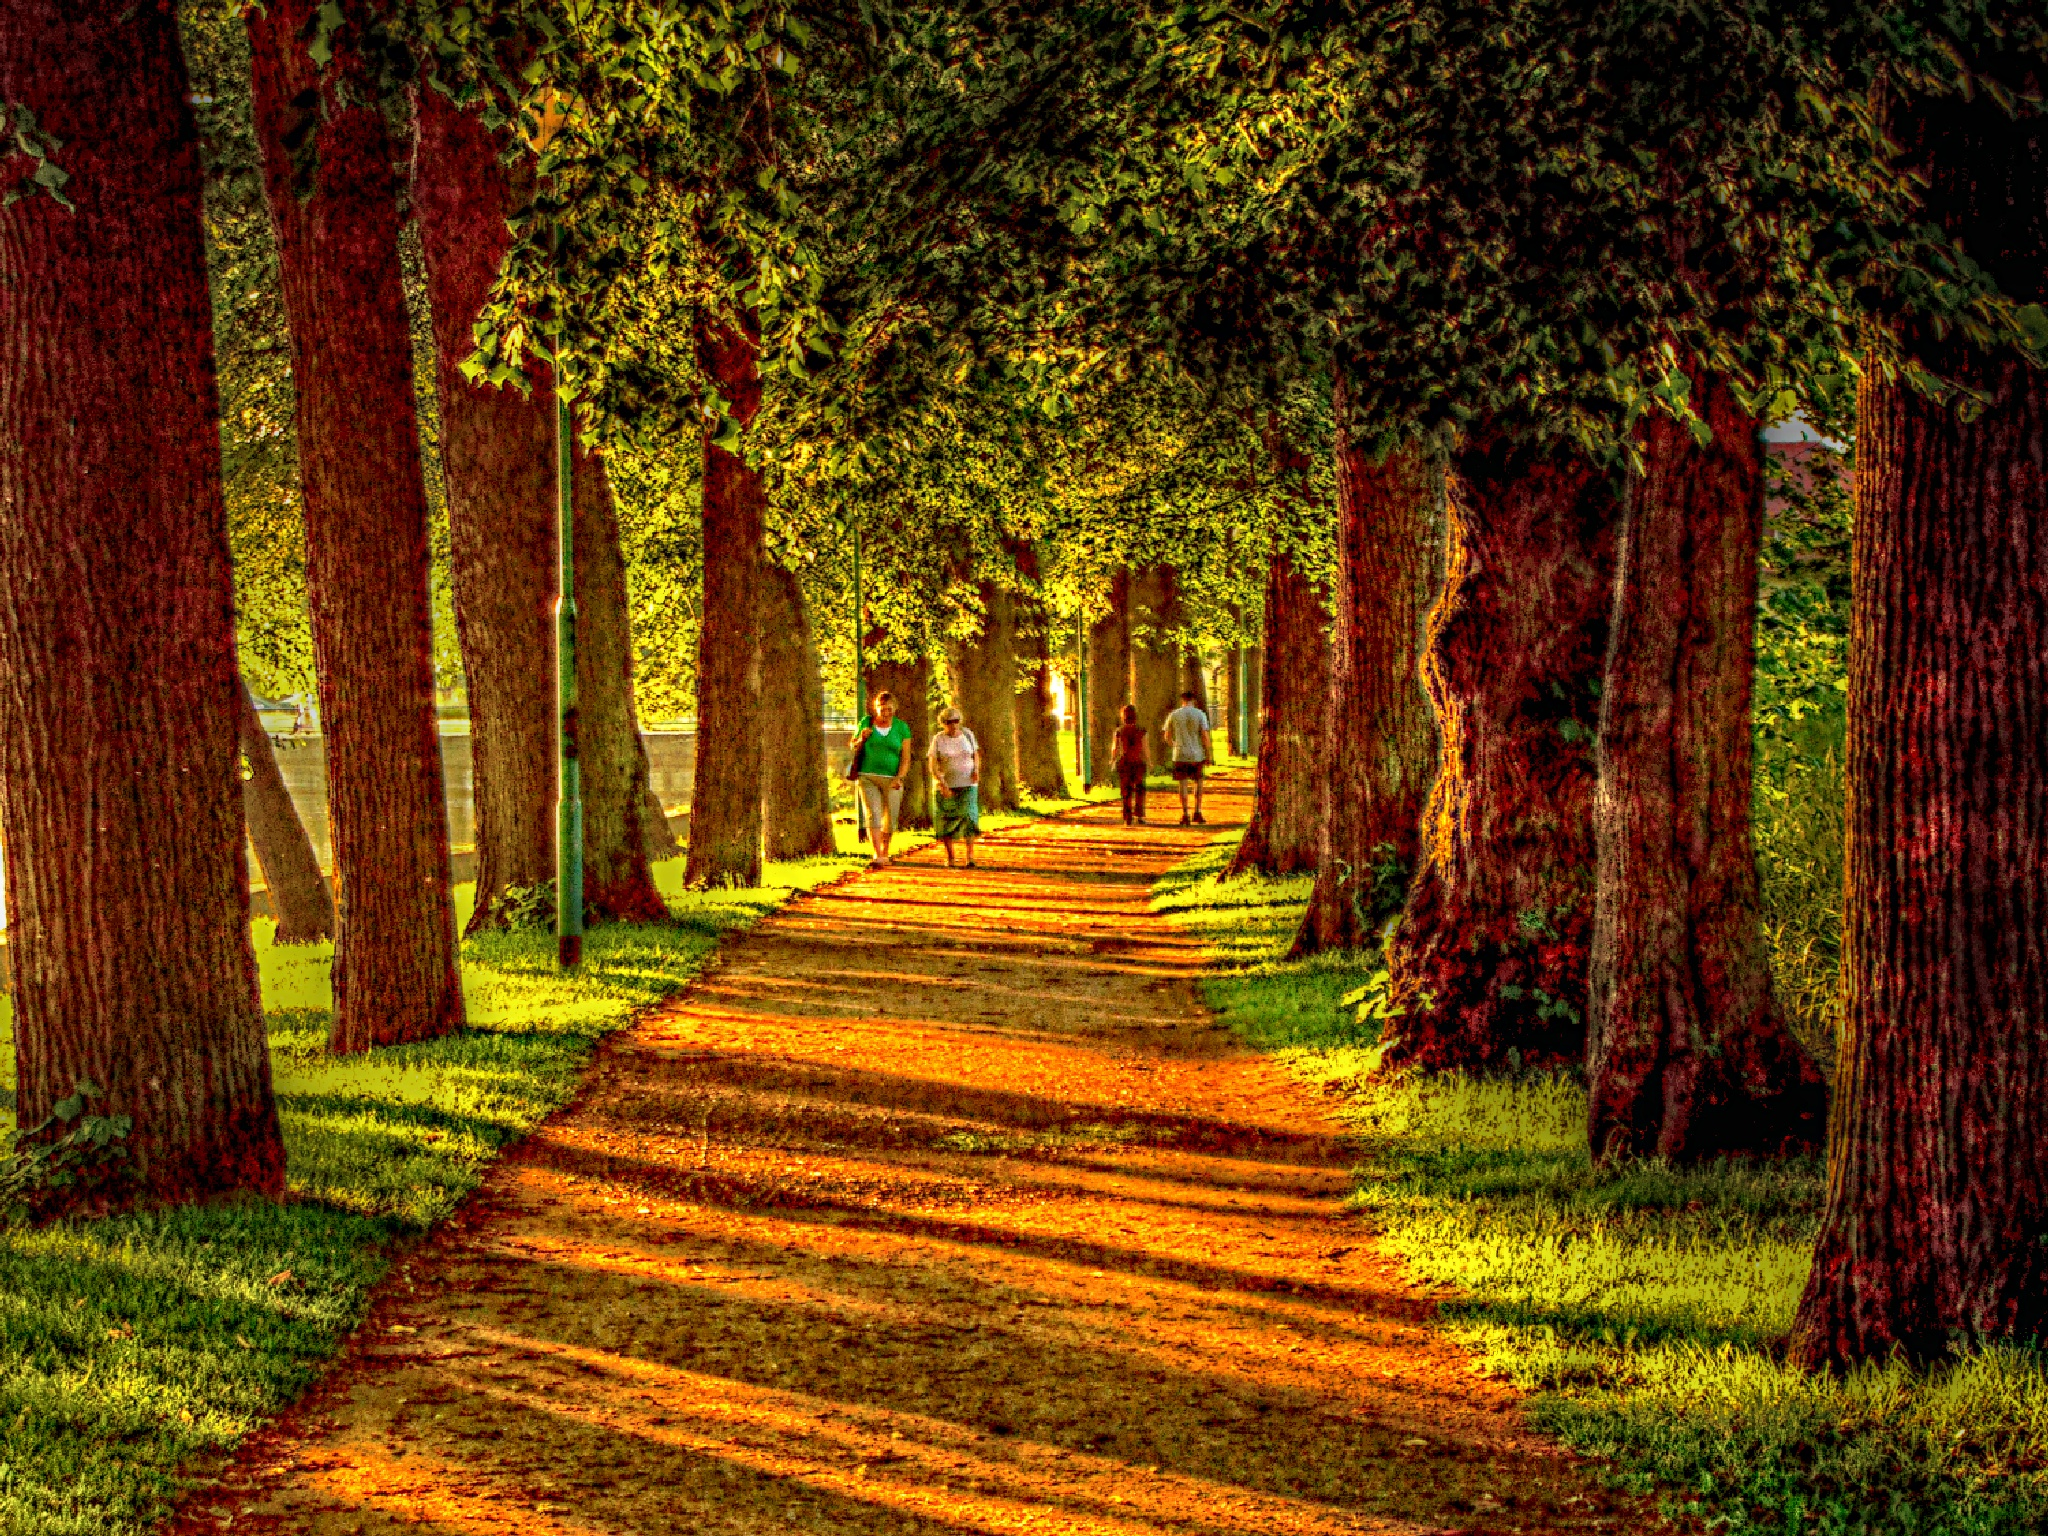 Out and about by Artur S